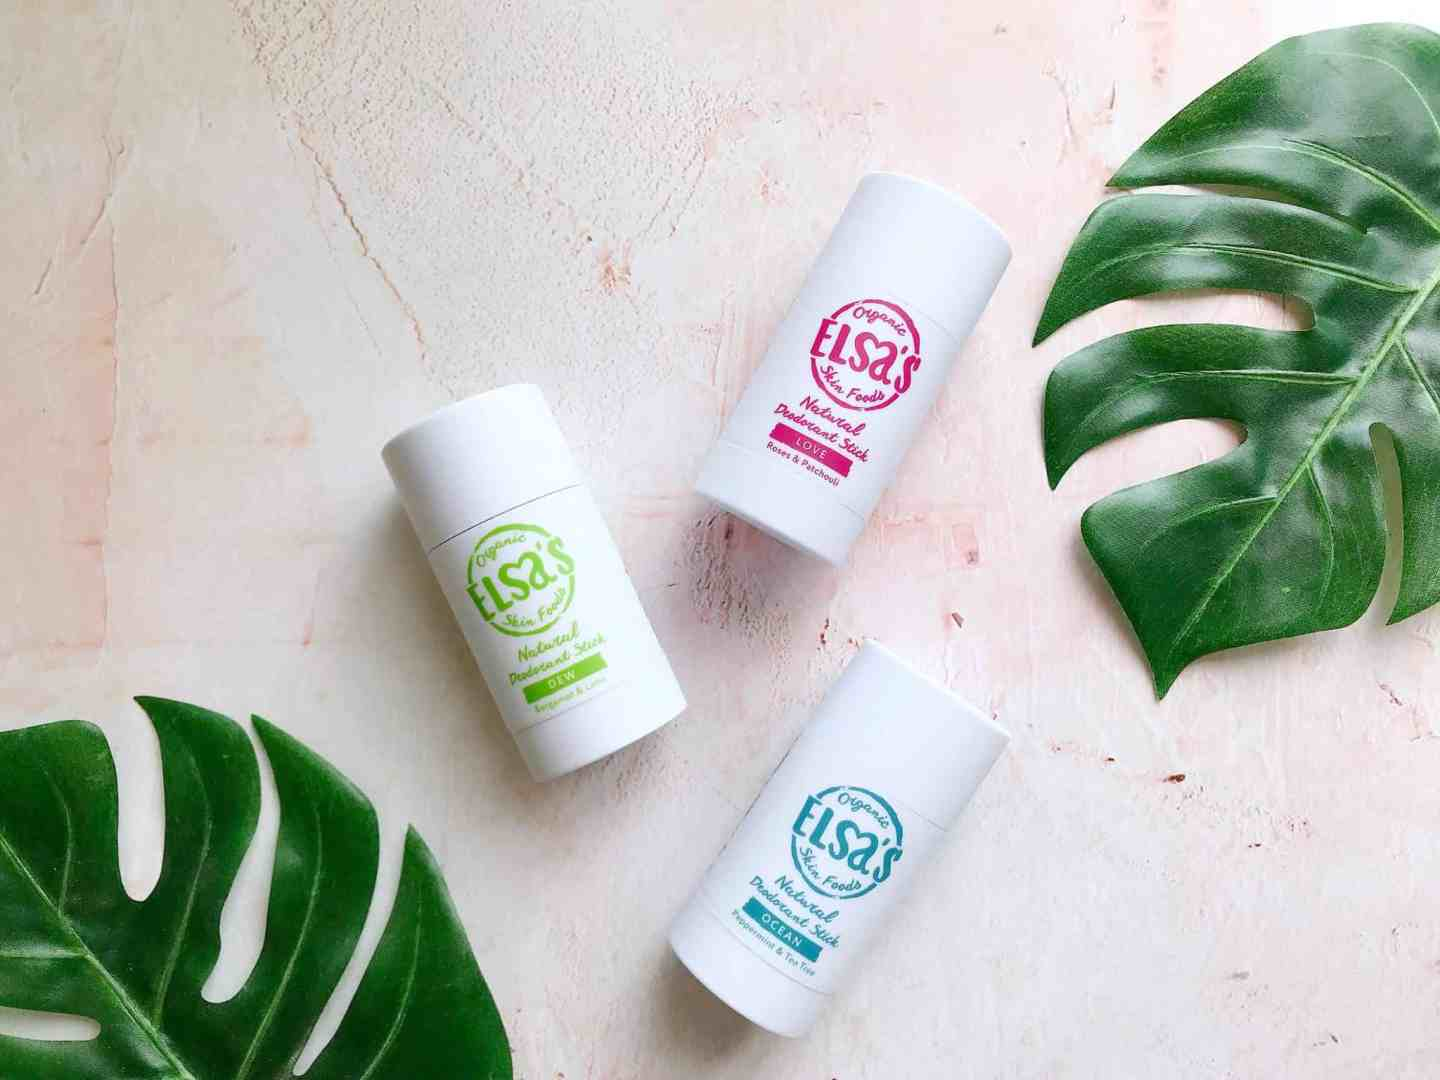 A 100% Natural Deodorant That Works? Meet Elsa's Organic Skinfoods